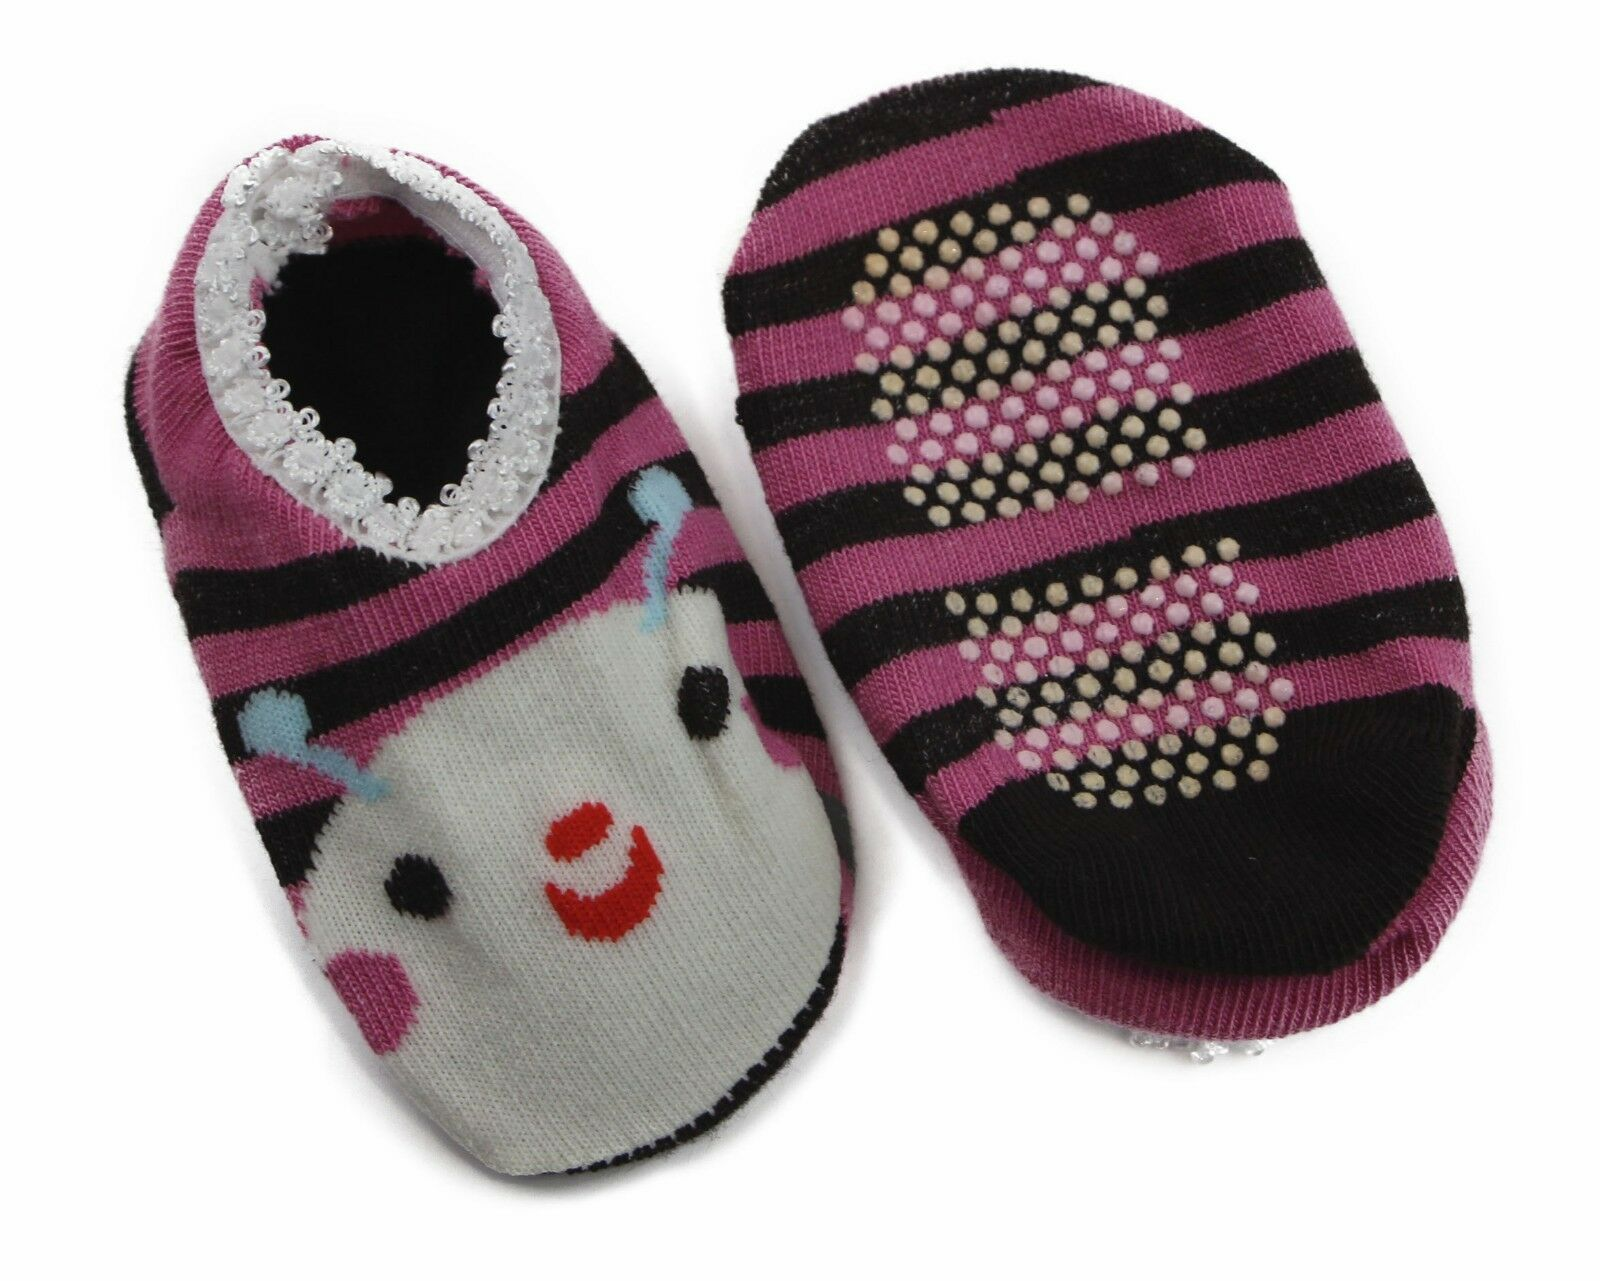 thumbnail 7 - Baby Footlets Kids Toddler Cotton Socks Anti Slip Grip Boys Girls 6-18 Months